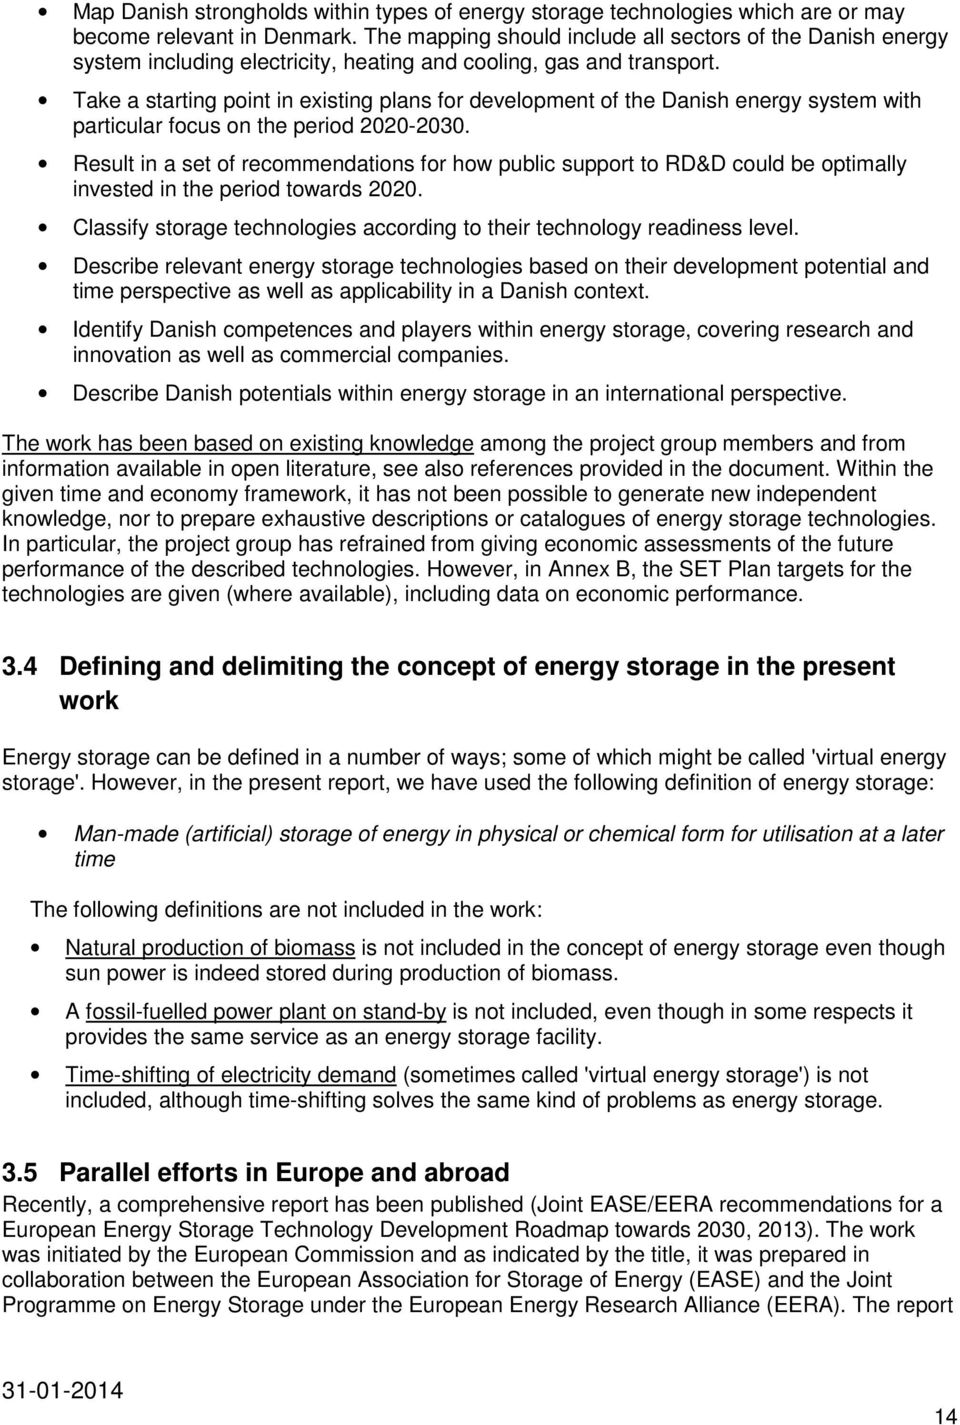 Take a starting point in existing plans for development of the Danish energy system with particular focus on the period 2020-2030.